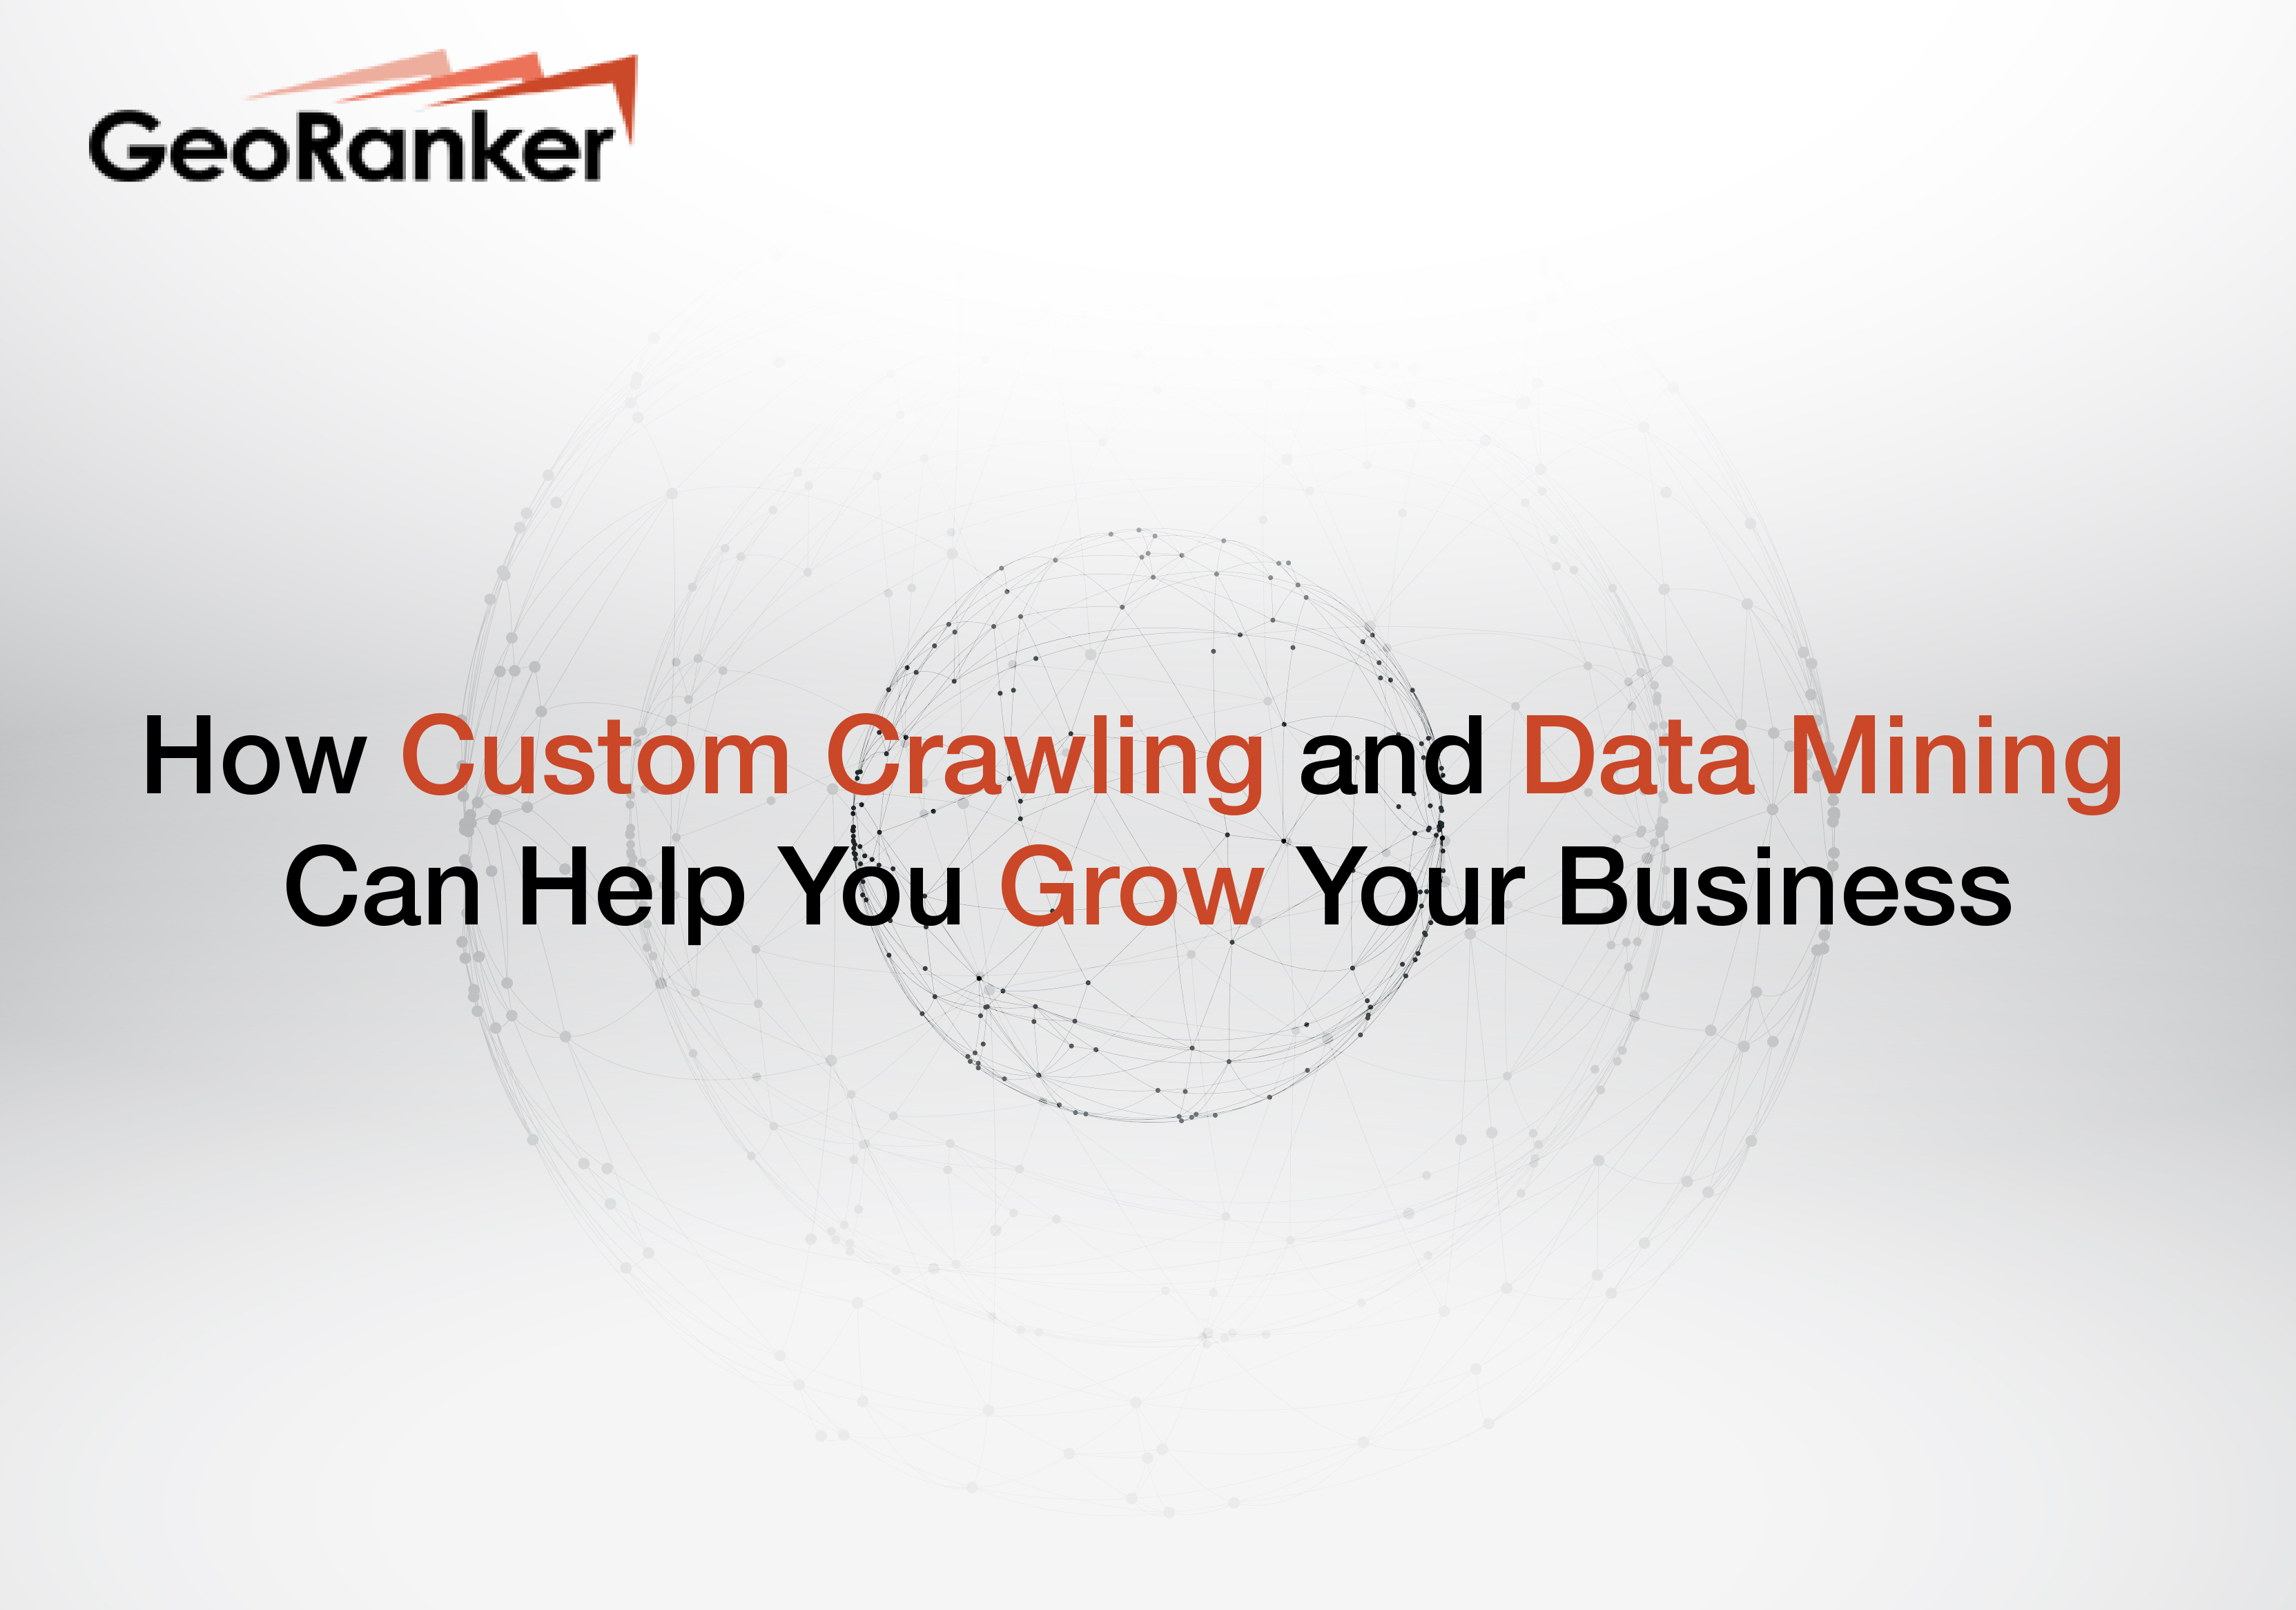 How custom crawling and data mining can help you grow your business